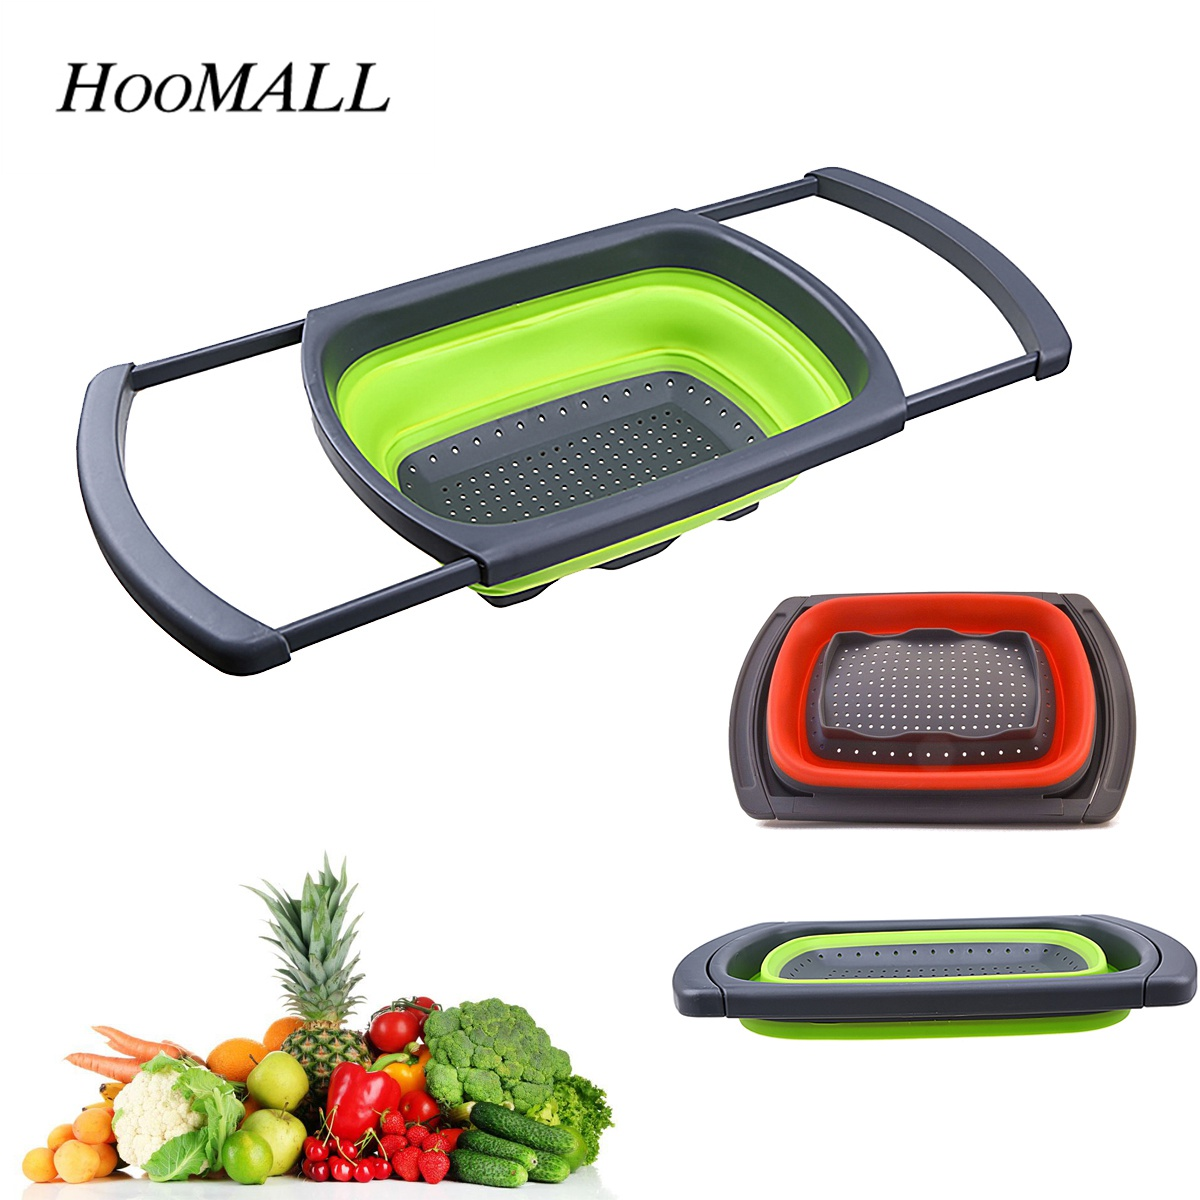 Hoomall 1pc Foldable Drain Basket Colander Sink Vegetable